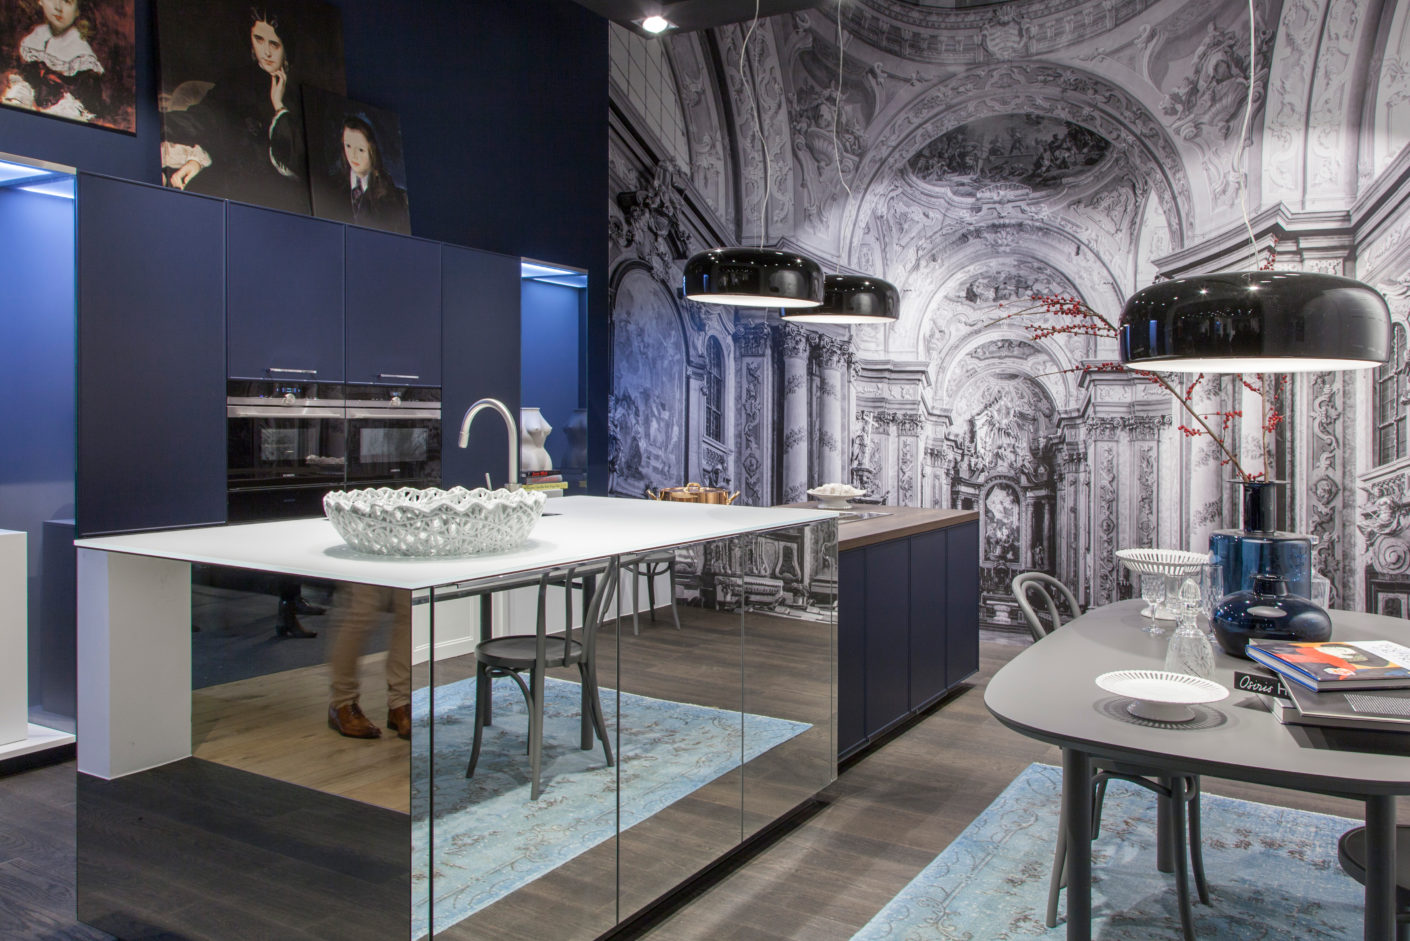 "Reflections in the kitchen: ""Neo Salon"" by Meiré und Meiré for Nolte Küchen."